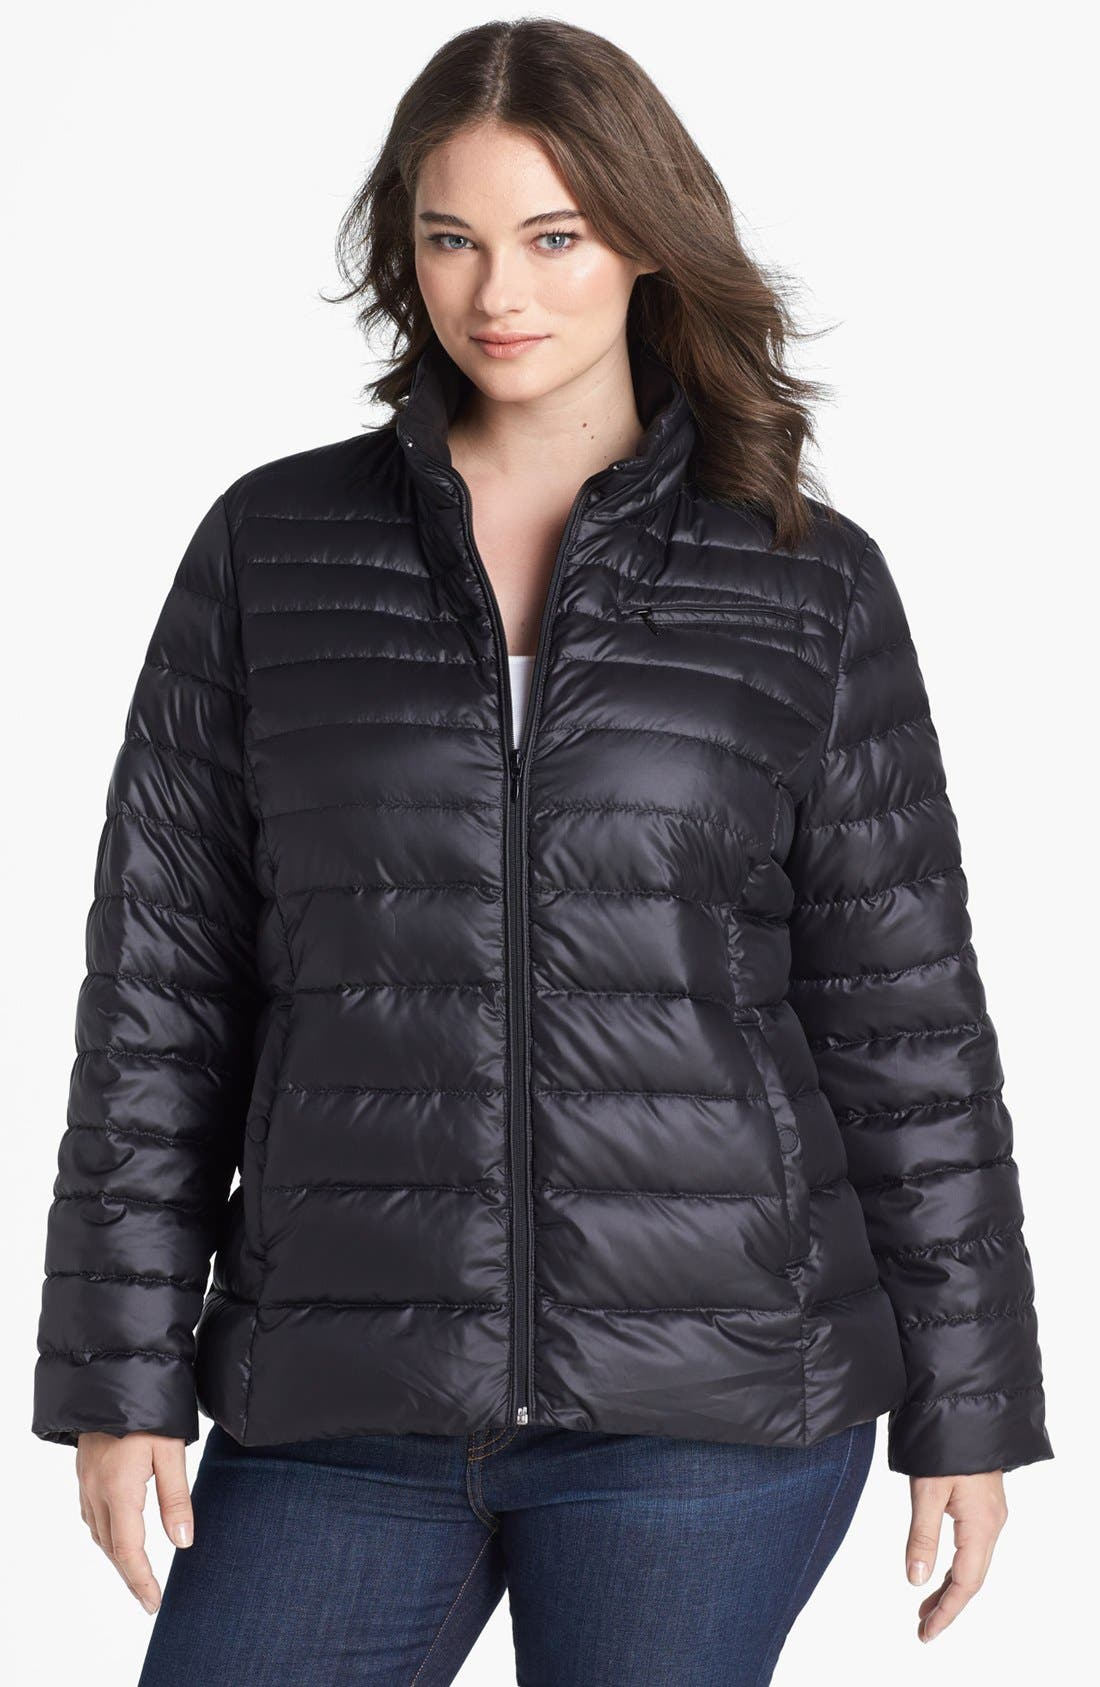 Alternate Image 1 Selected - Marc New York by Andrew Marc 'Essex' Lightweight Down Jacket (Plus Size)